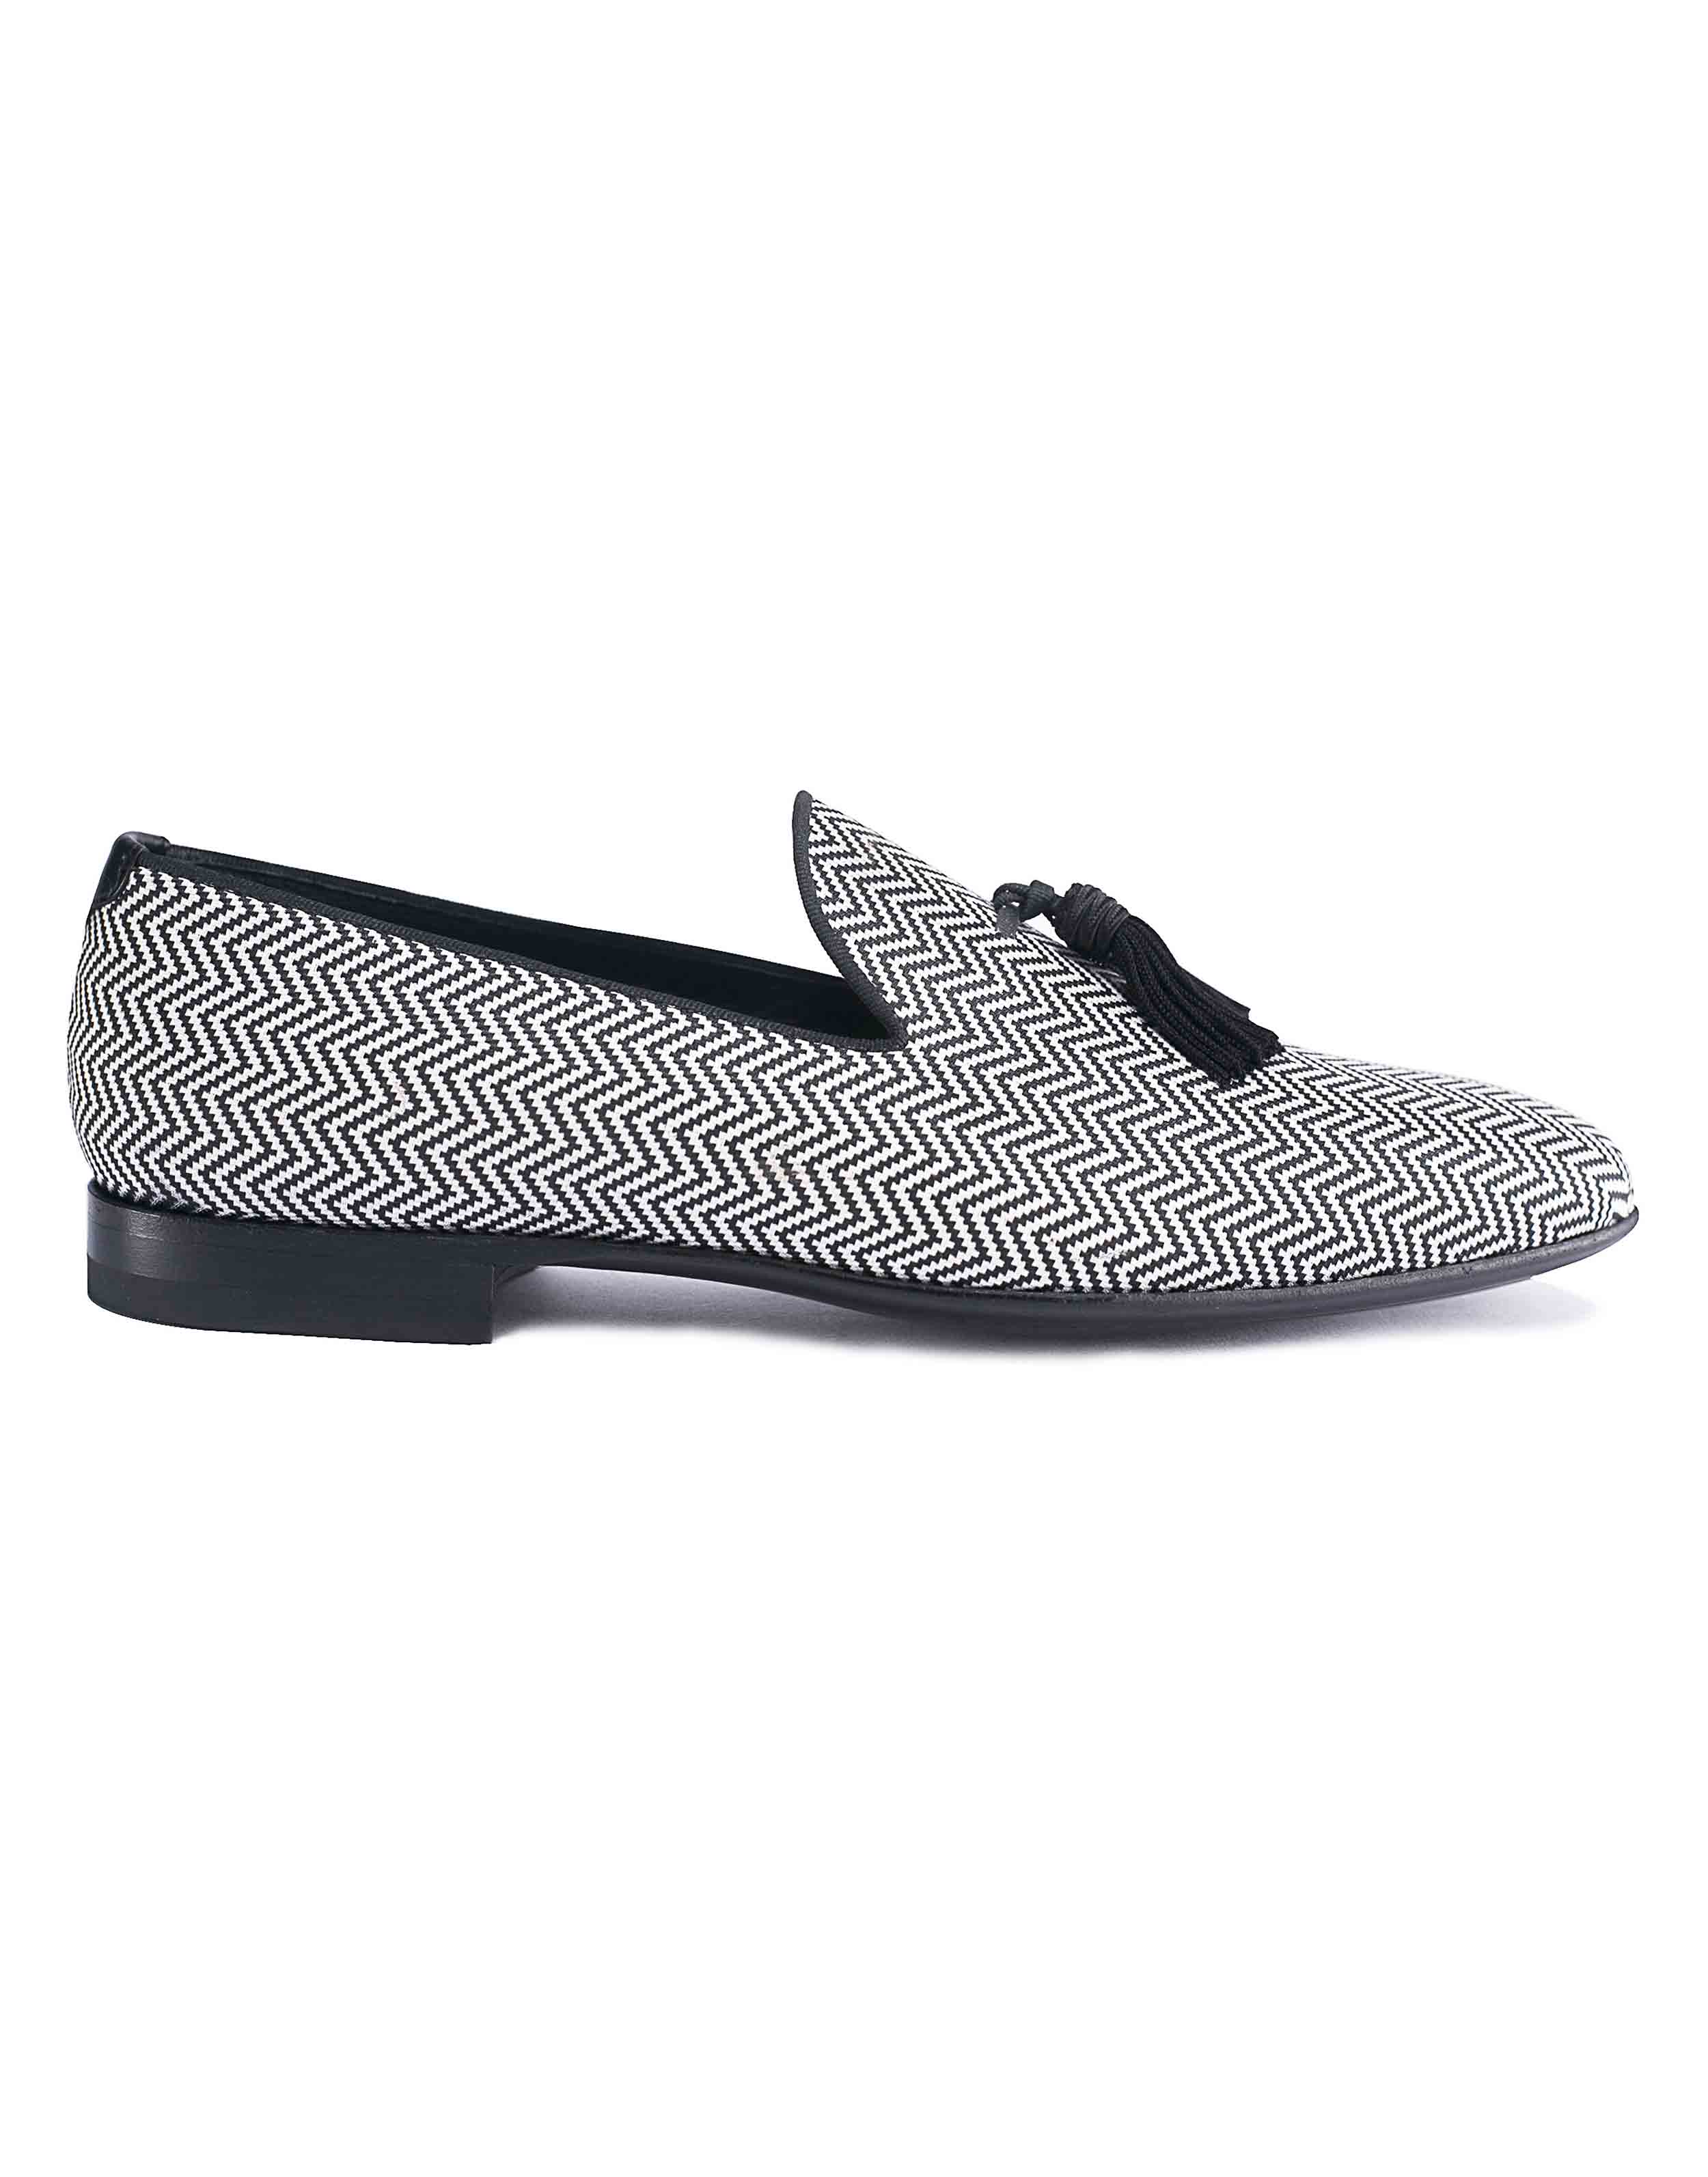 CHEVRON JACQUARD TASSEL LOAFER1